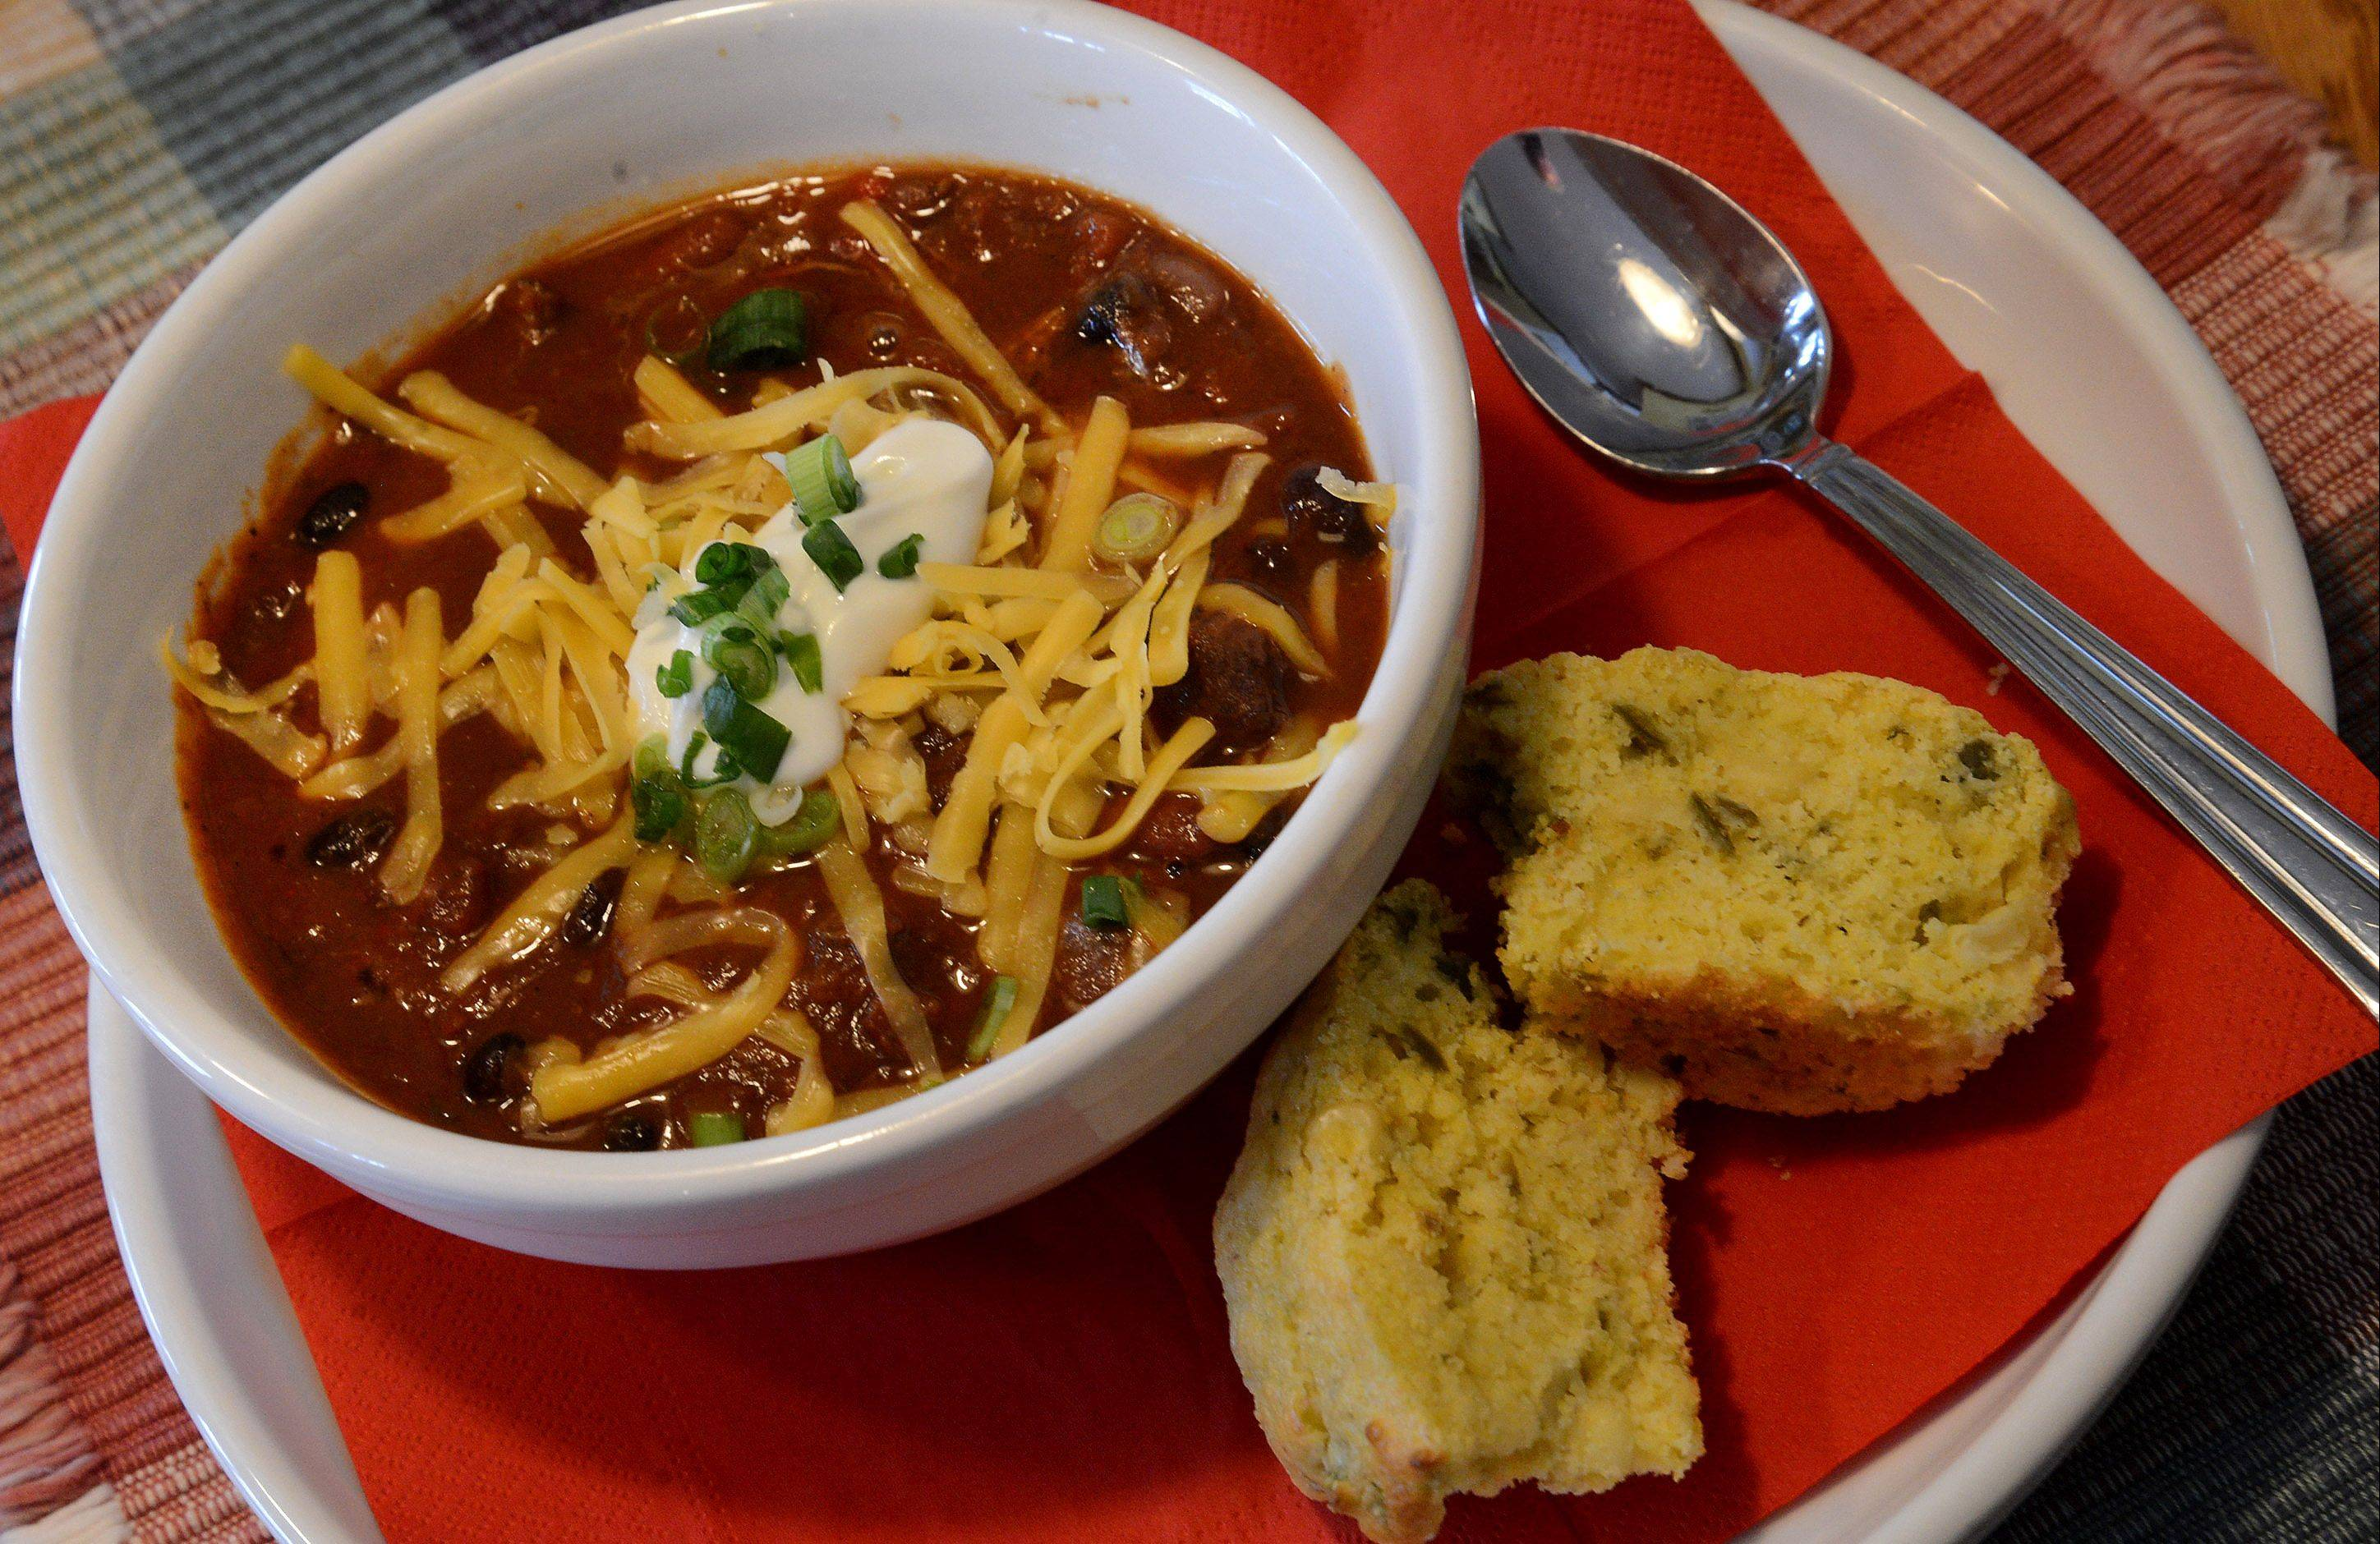 Dried beans or canned can be used in Penny Kazmier's Beef and Two Bean Chili, a recipe inspired by a class she took at Stonewall Kitchen in York, Maine.